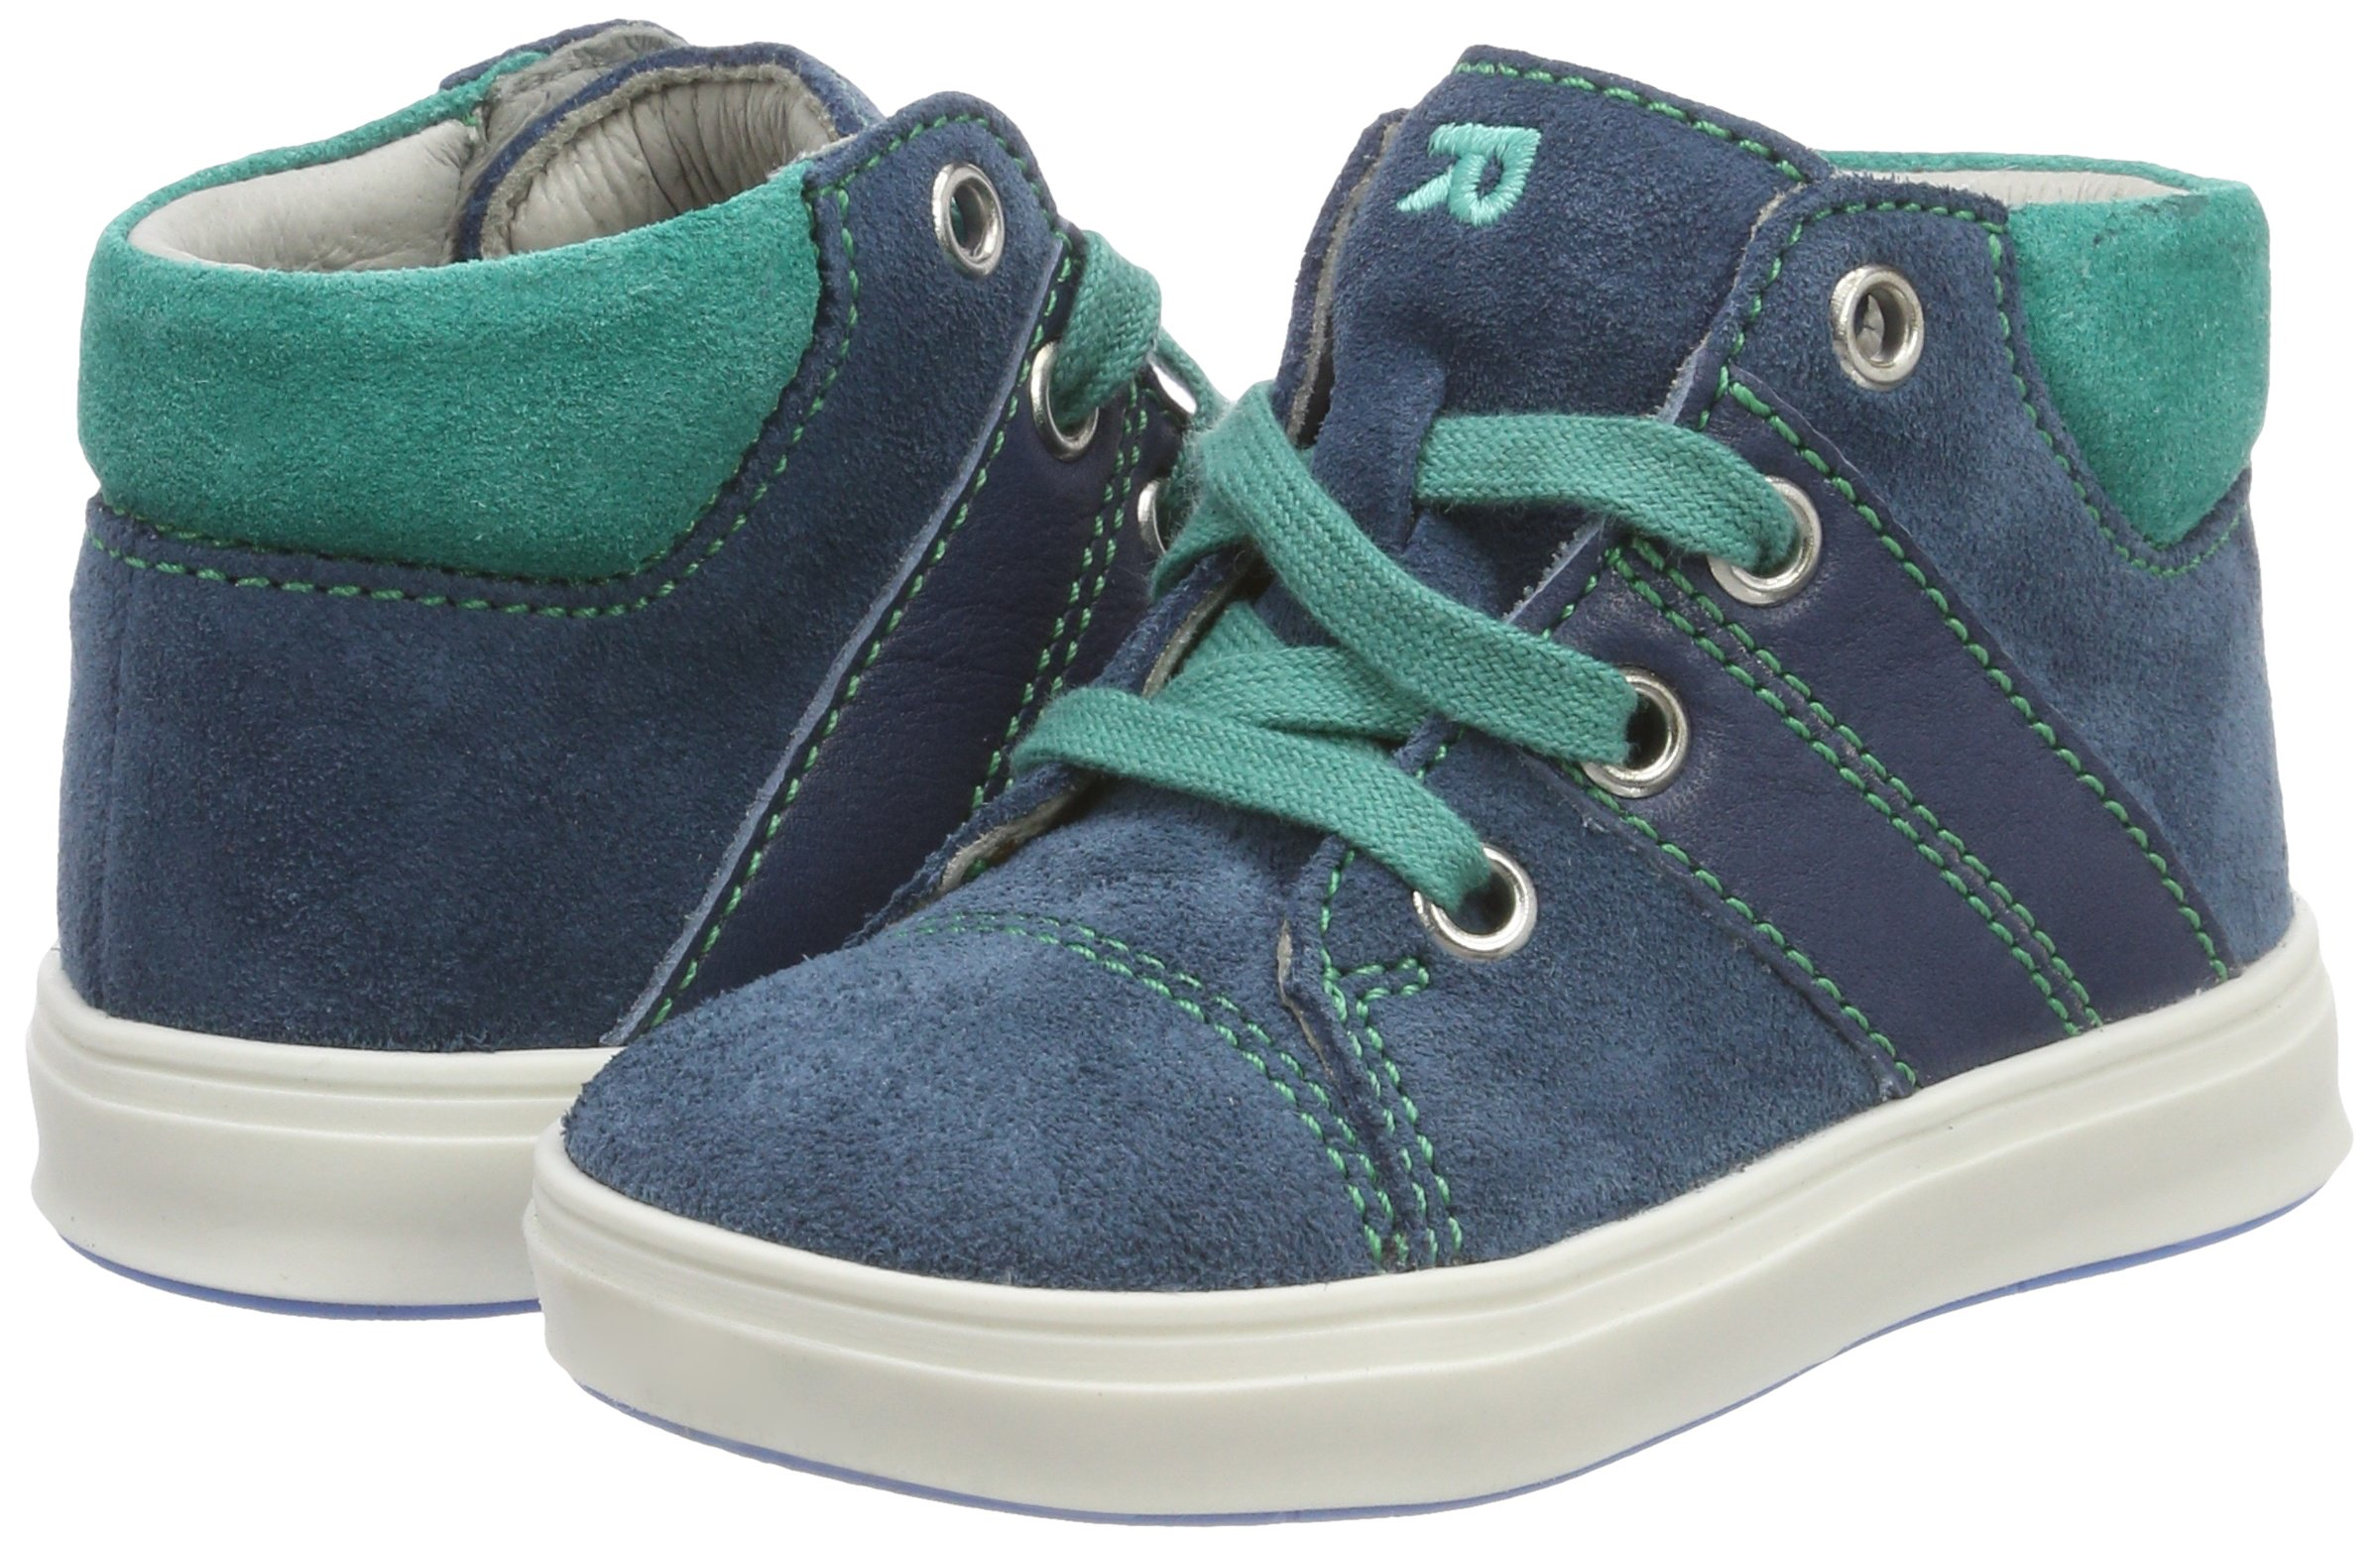 Richter Kinderschuhe Boys' Jimmy Derbys, Blue (Pacific/Menta 6701), 7.5 UK by Richter Kinderschuhe (Image #5)